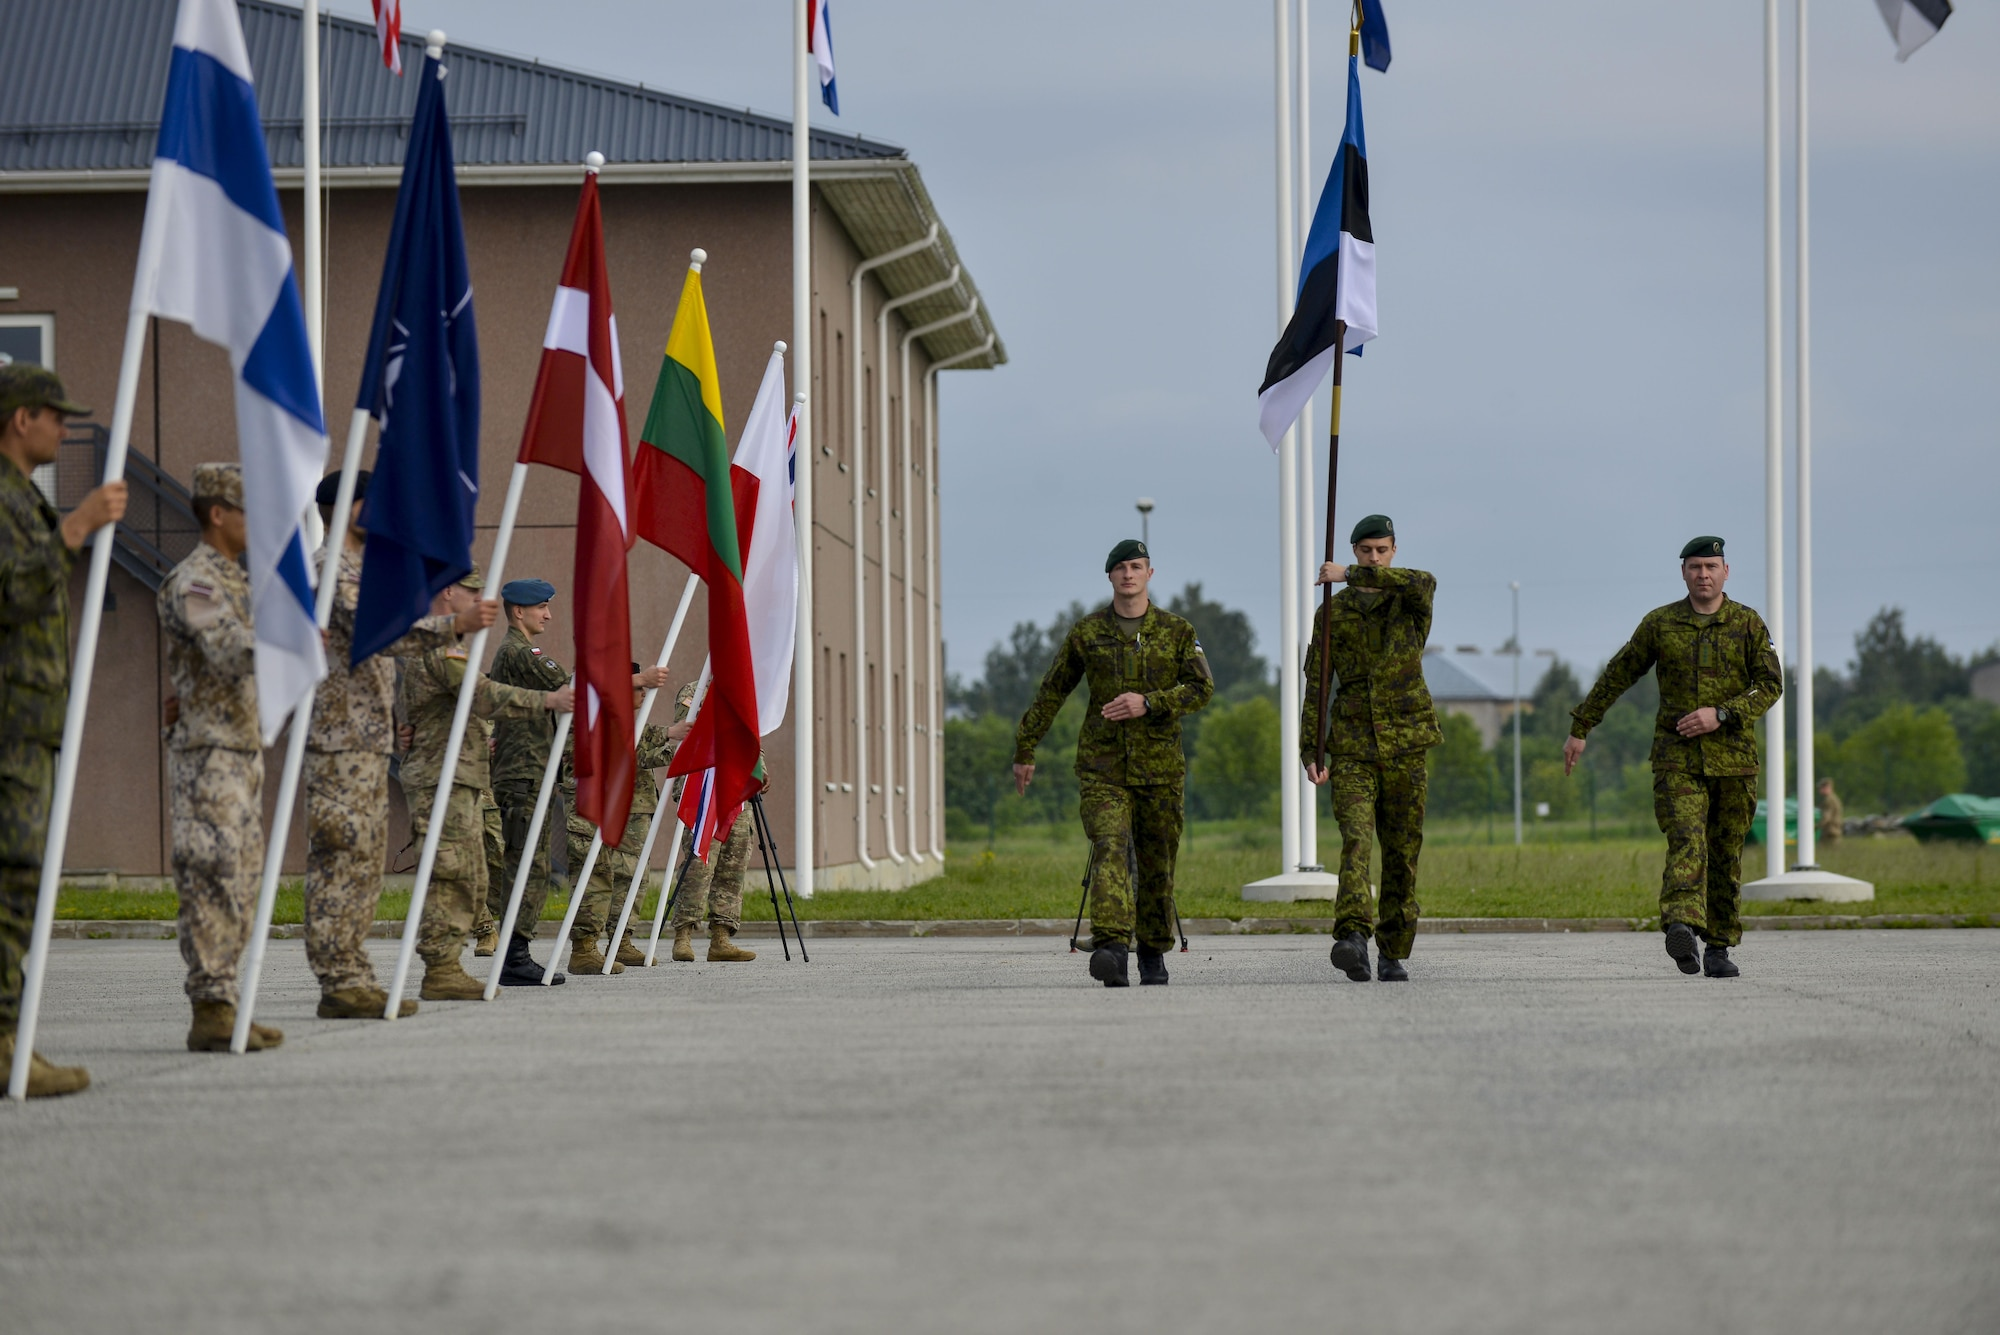 Estonian soldiers present the colors during the closing ceremony for Saber Strike 16 at Tapa Training Base, Estonia, June 21, 2016. U.S. forces in Europe participated in Saber Strike 16; a long-standing, U.S. Joint Chiefs of Staff-directed, U.S. Army Europe-led cooperative-training exercise, which has been conducted annually since 2010.  This year's exercise focused on promoting interoperability with allies and regional partners. The United States has enduring interests in supporting peace and prosperity in Europe and bolstering the strength and vitality of NATO, which is critical to global security. (U.S. Air Force photo/Senior Airman Nicole Keim)